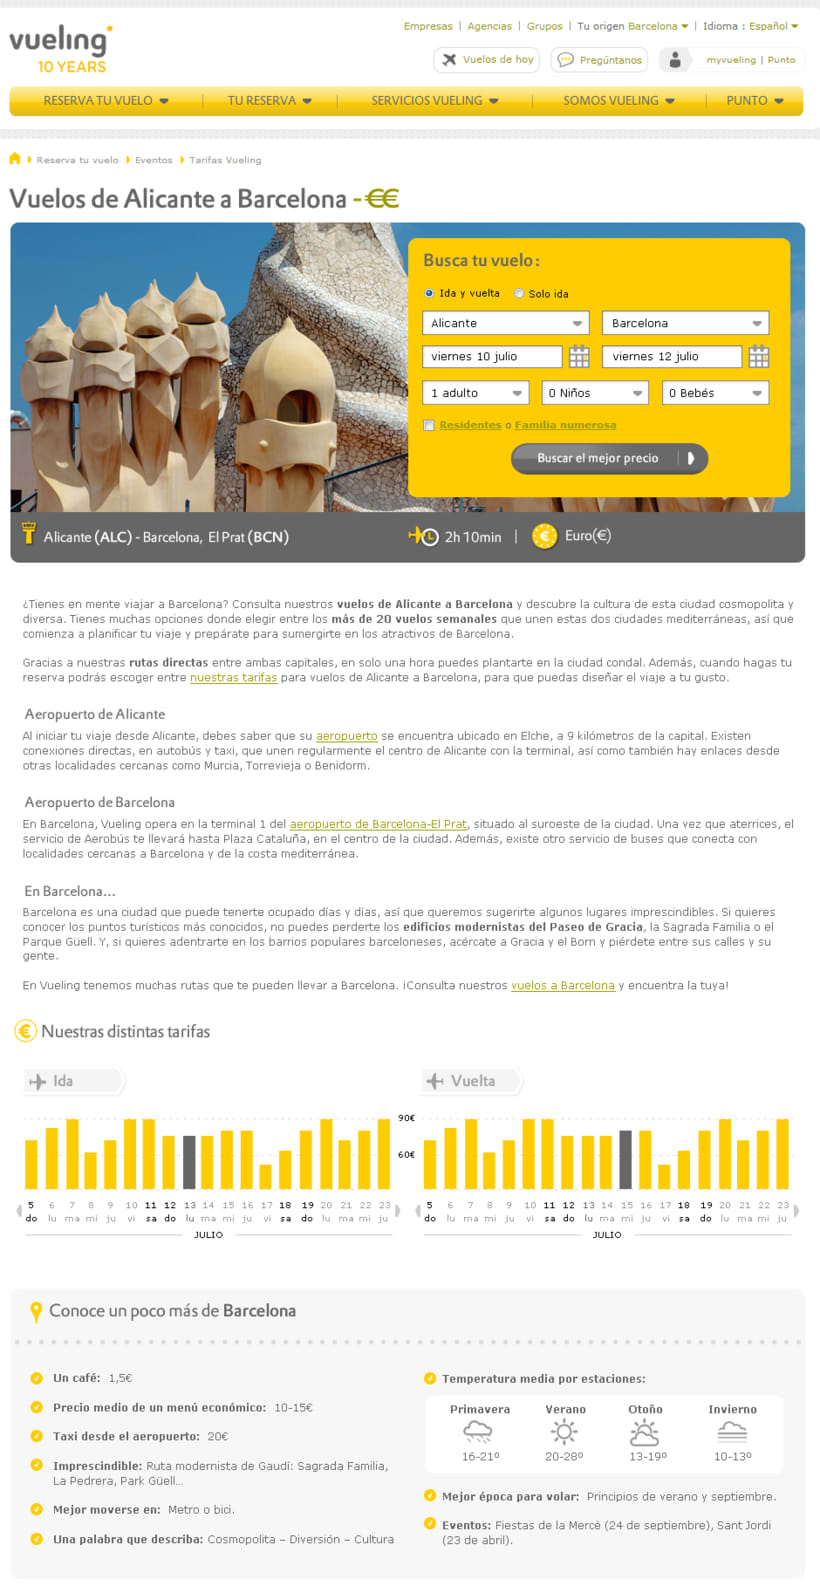 Vueling - Copywriting 6